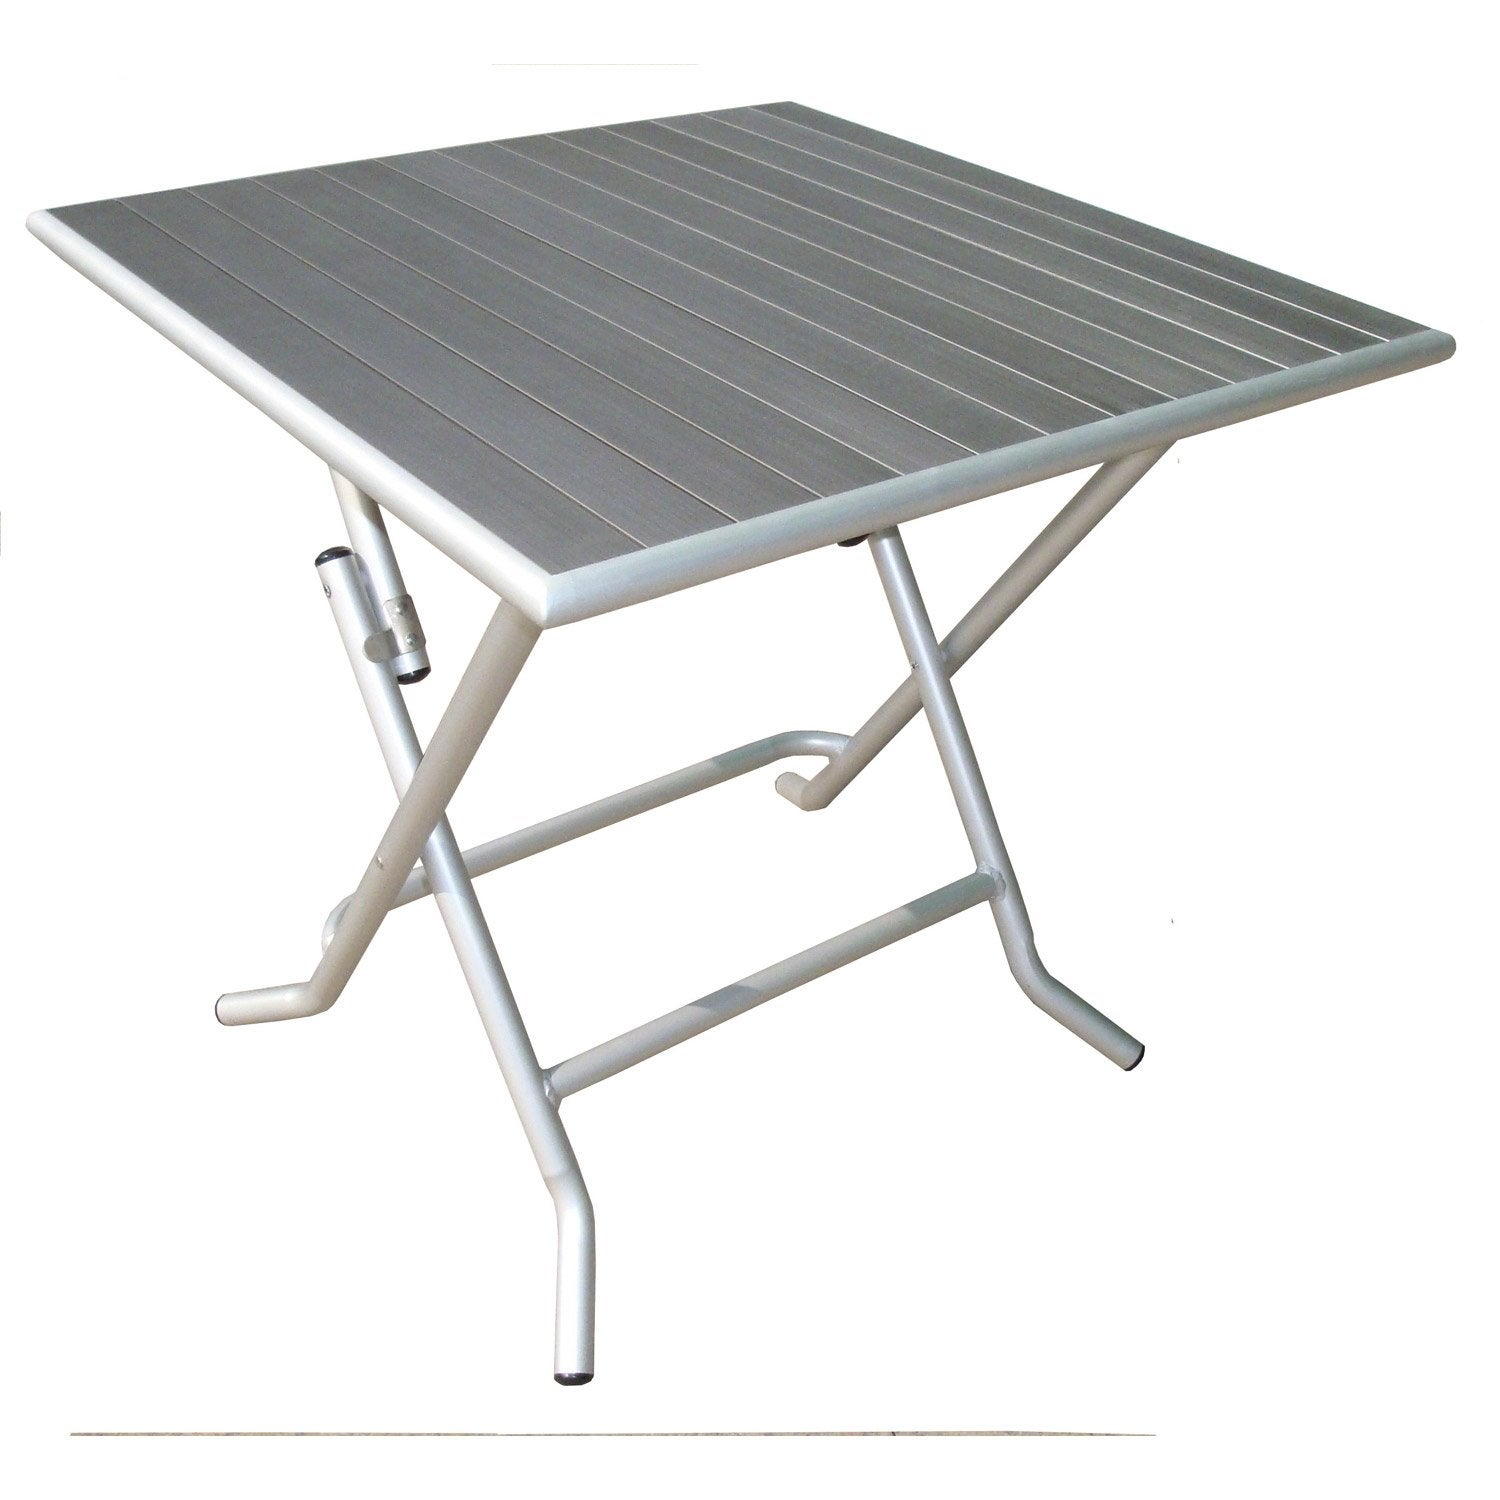 Table de jardin m tal leroy merlin for Balancines para jardin leroy merlin